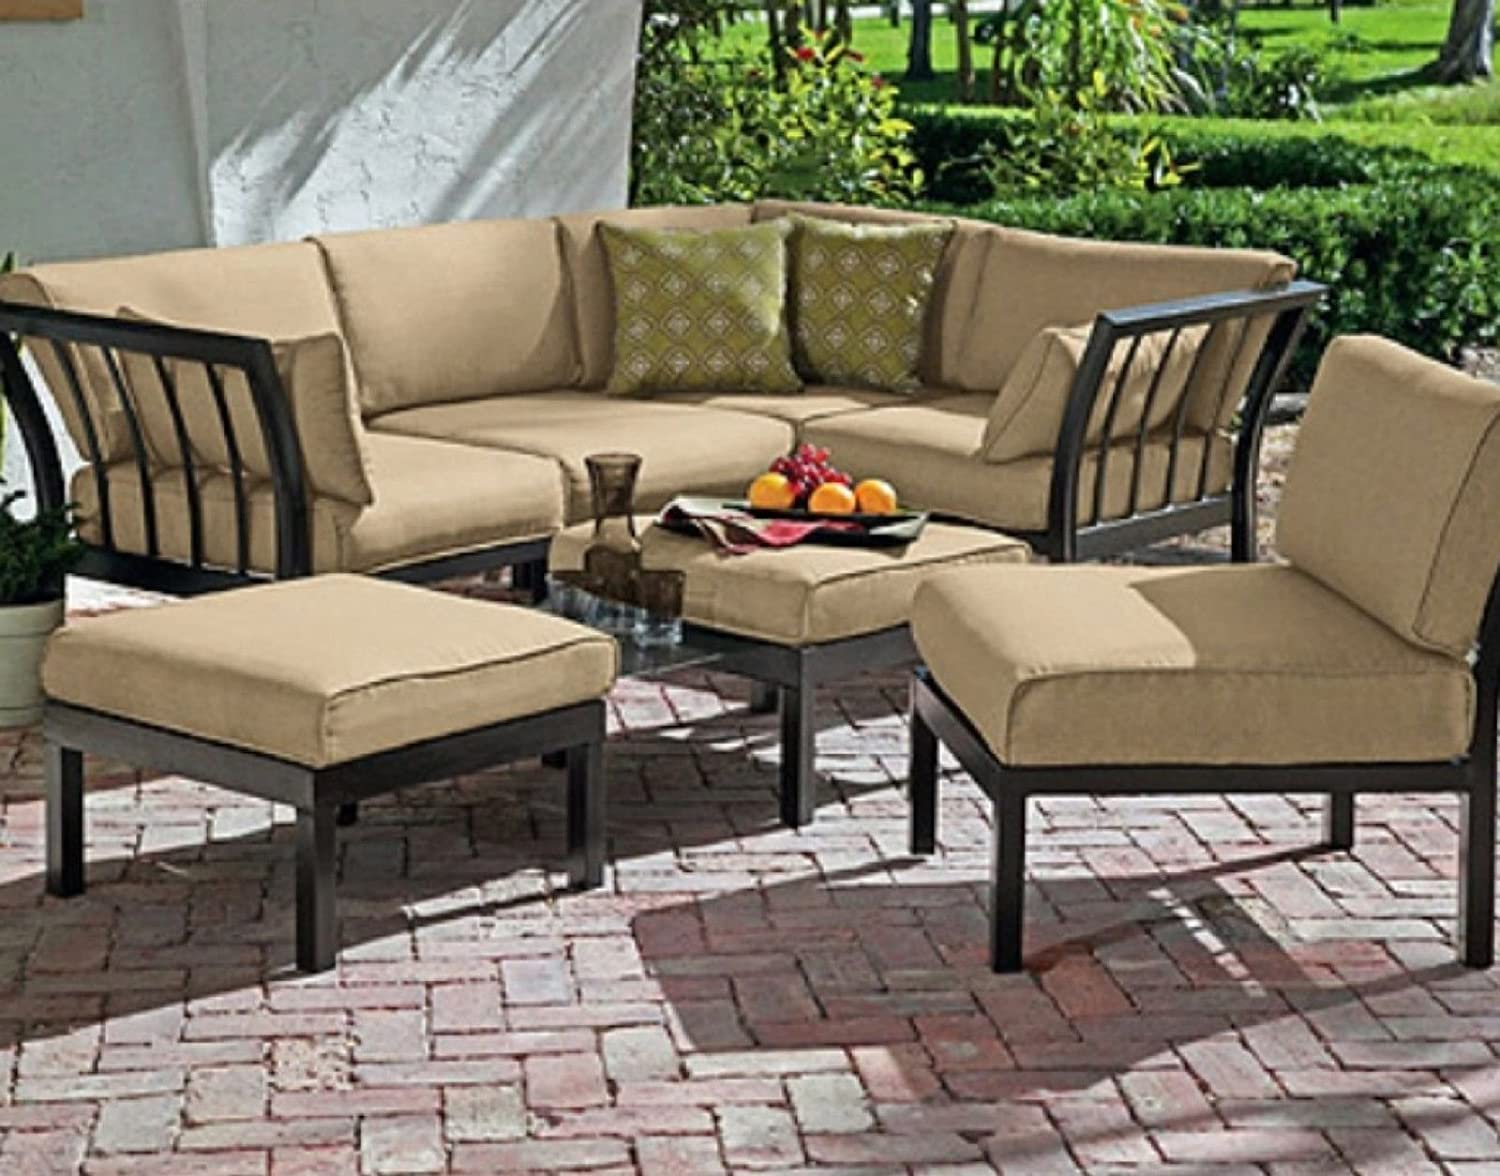 Attractive Amazon.com : Outdoor Patio Sectional 7 Piece Stylish Furniture Sofa Set  Seats Deep Seating : Garden U0026 Outdoor